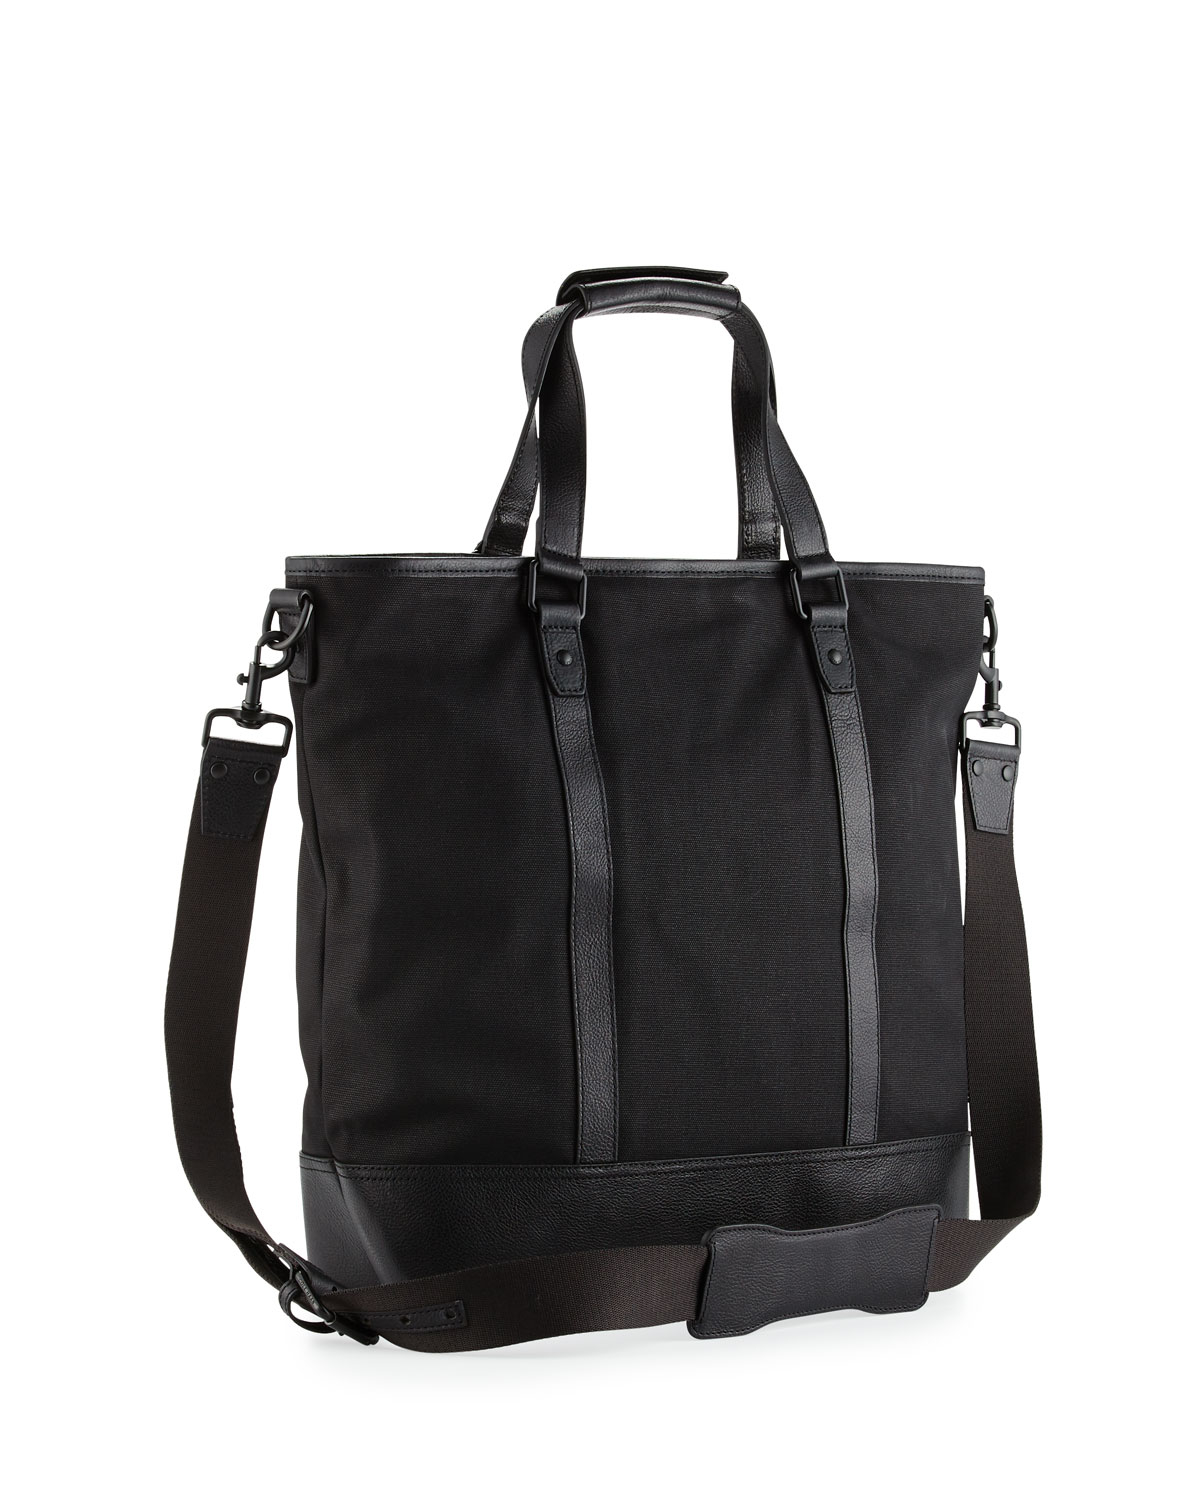 2aeb2cbc7a7 Cole Haan Leather-trim Canvas Tote Bag in Black - Lyst